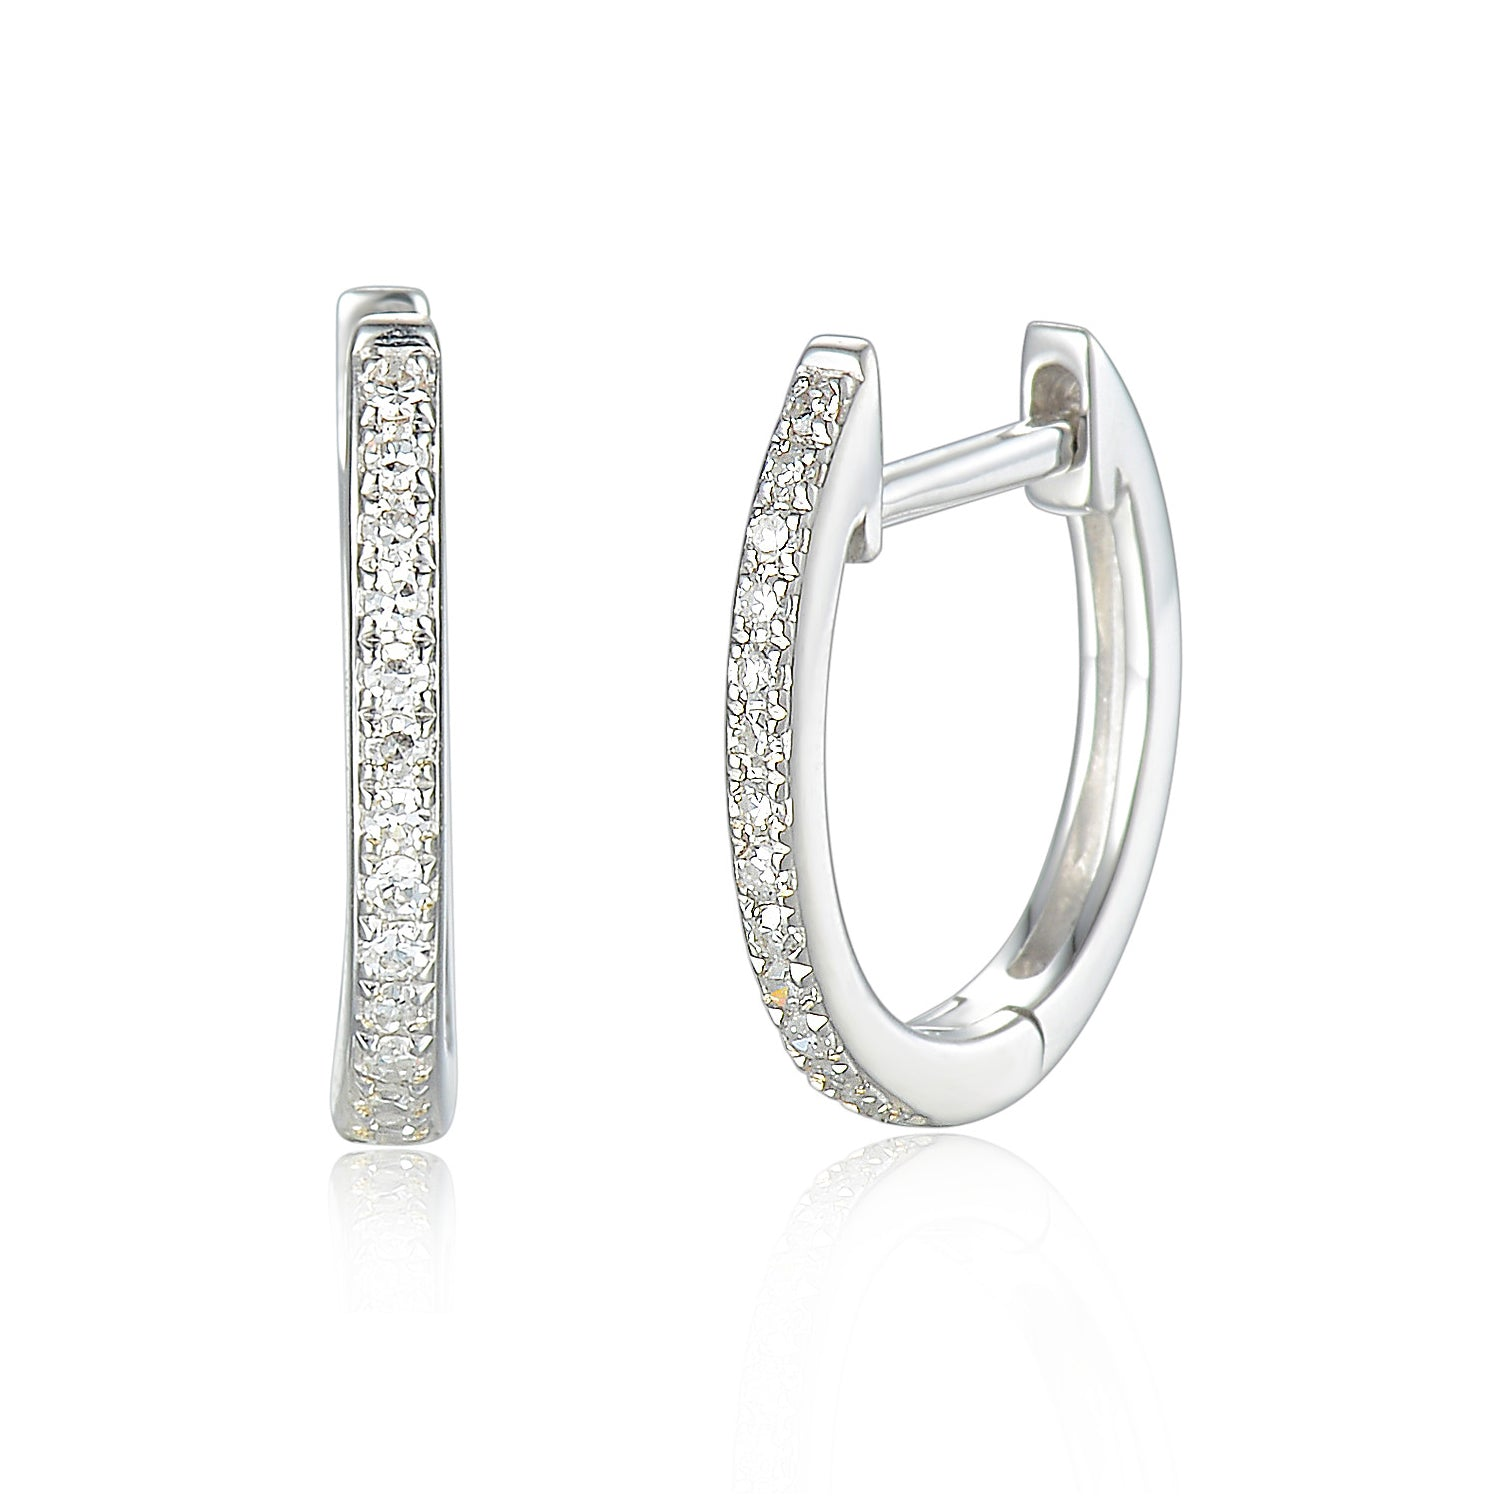 6c0778629 Buy 18ct White Gold Diamond Sleeper Hoop at Tzefira for only £495.00